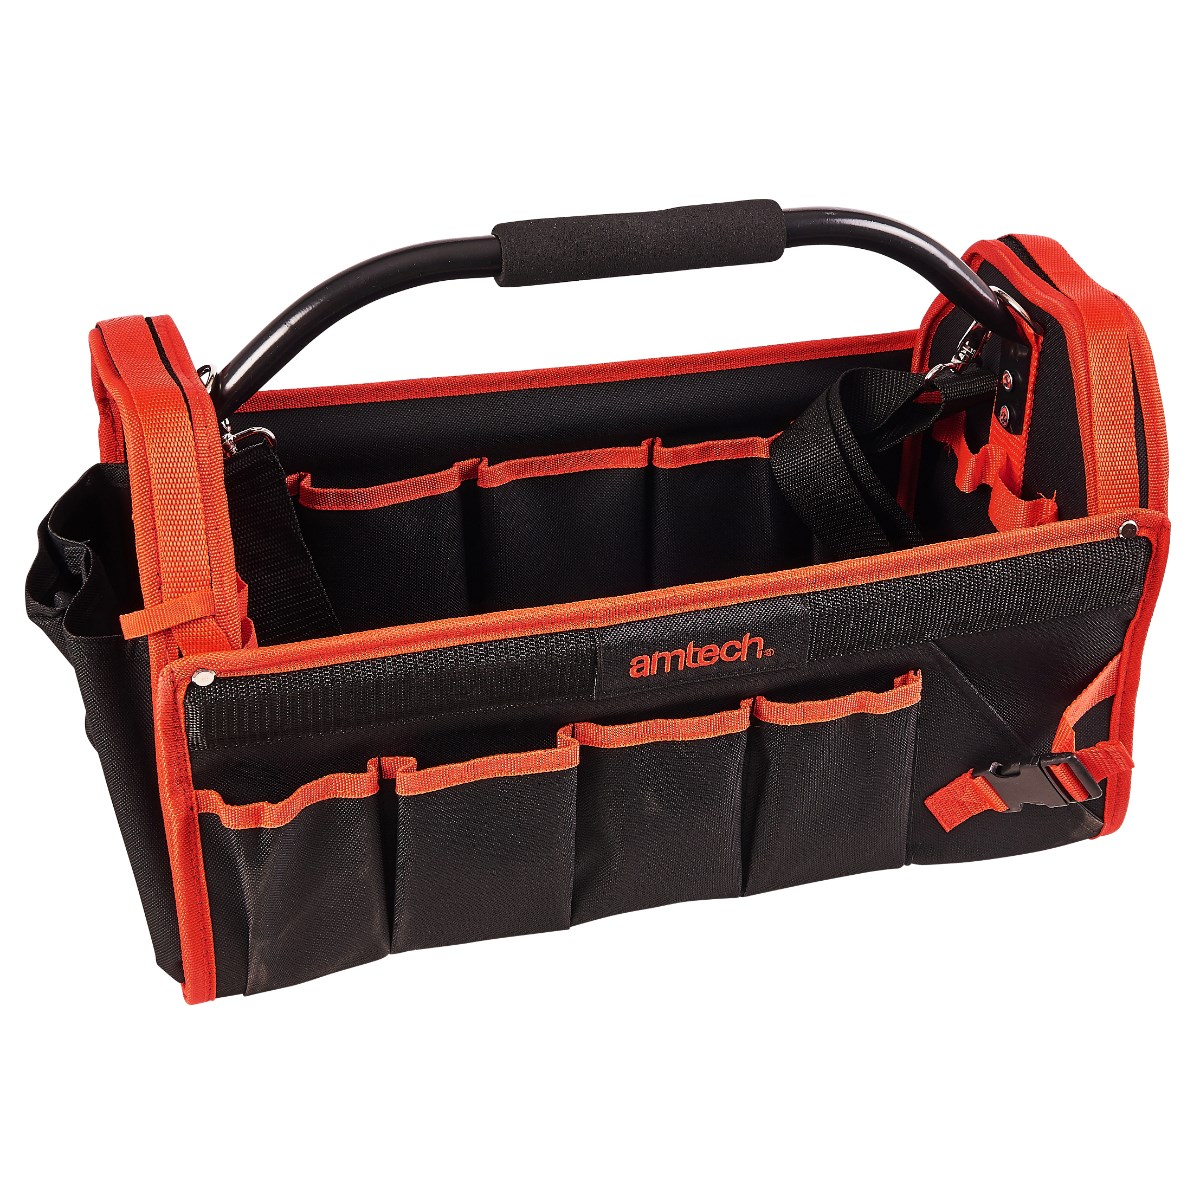 Image of 450mm (18″) tool caddy holdall